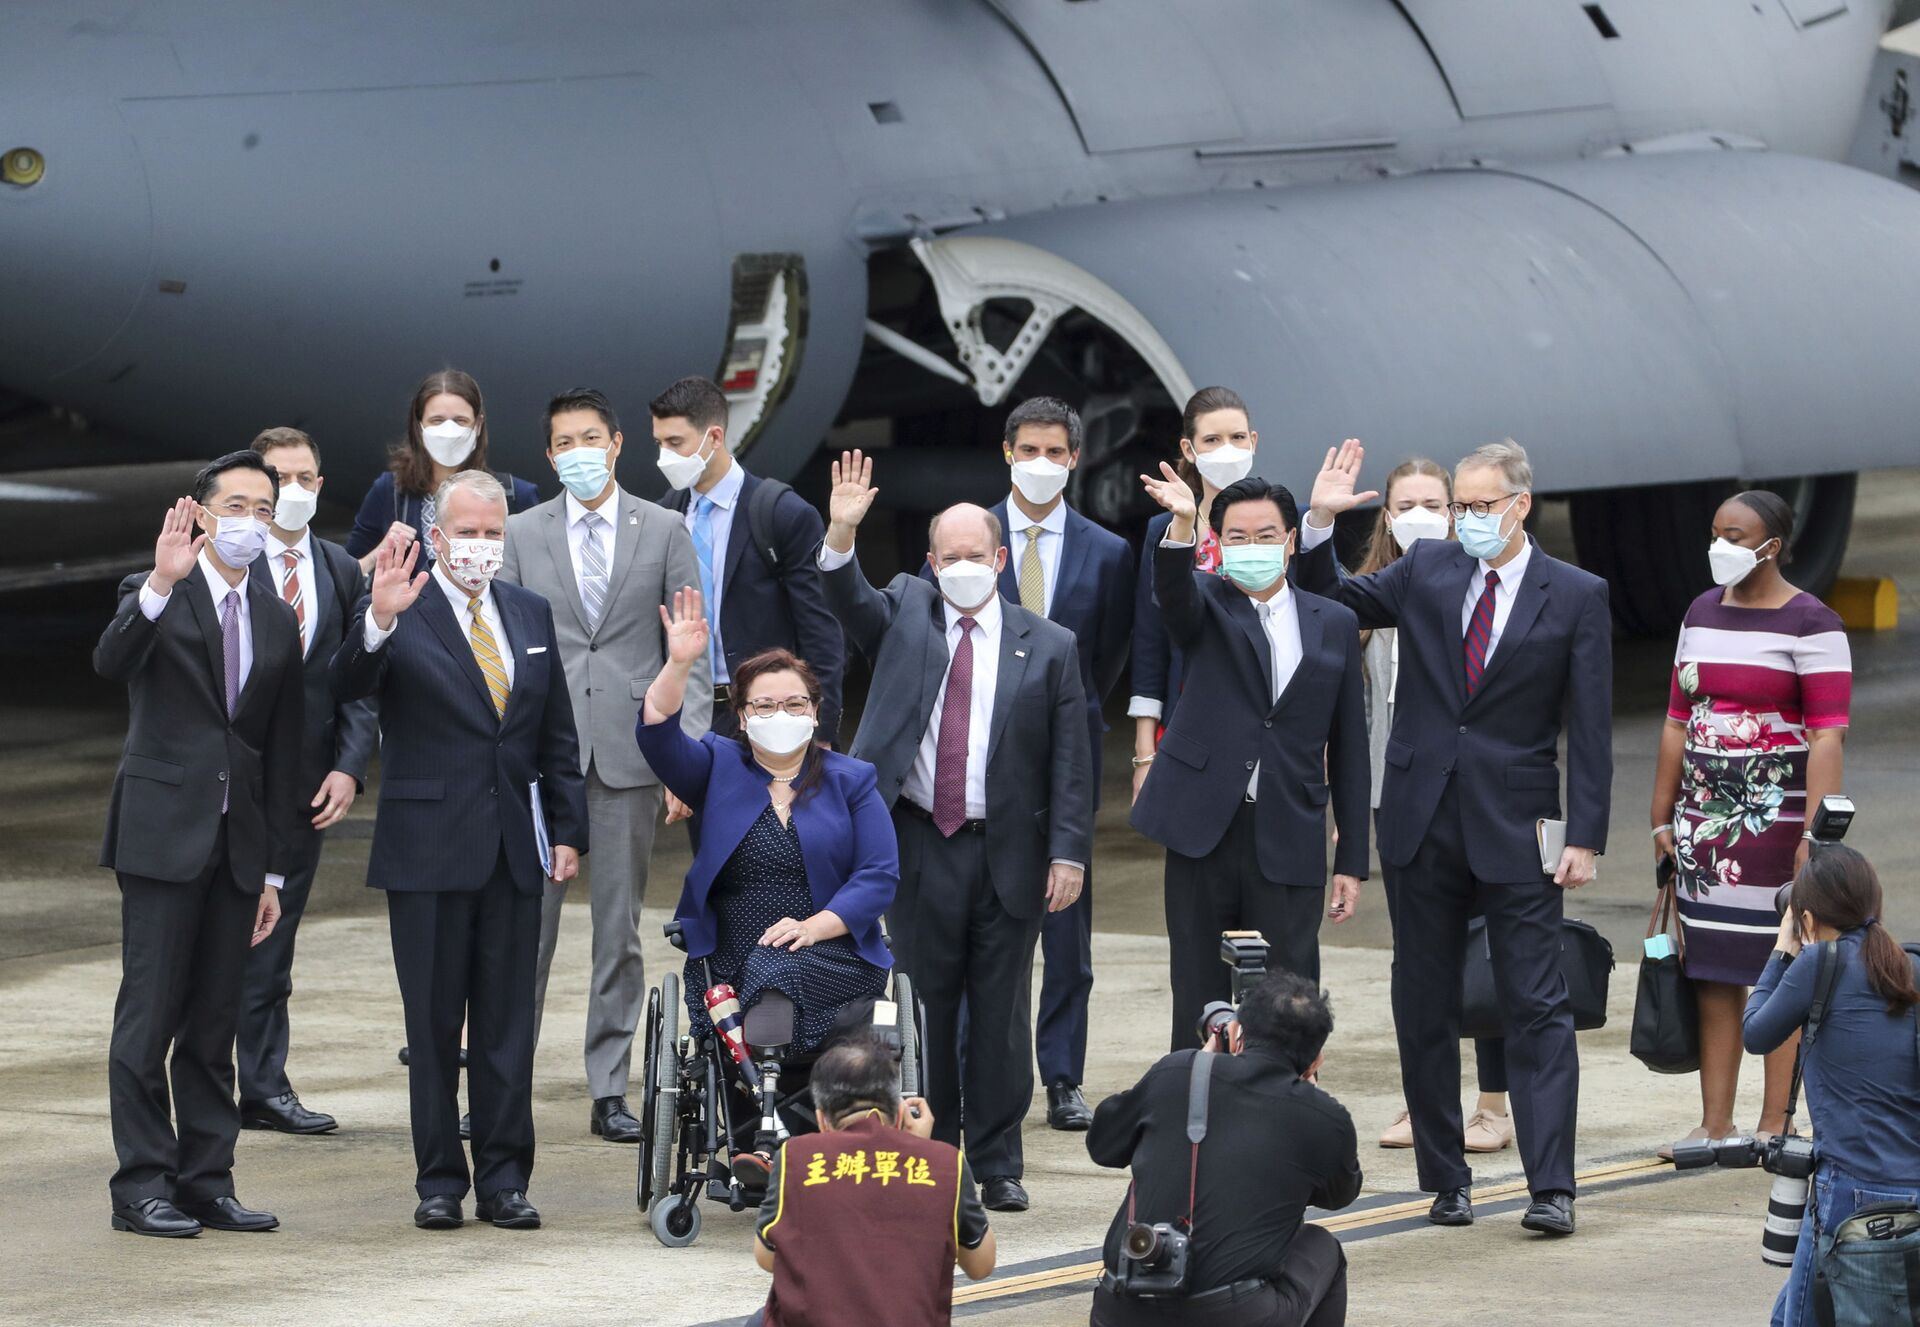 Taiwan's Foreign Minister Joseph Wu, fourth from right, waves with U.S. senators to his right Democratic Sen. Christopher Coons of Delaware, a member of the Foreign Relations Committee, Democratic Sen. Tammy Duckworth of Illinois and Republican Sen. Dan Sullivan of Alaska, members of the Armed Services Committee on their arrival at the Songshan Airport in Taipei, Taiwan on Sunday, June 6, 2021 - Sputnik International, 1920, 07.09.2021